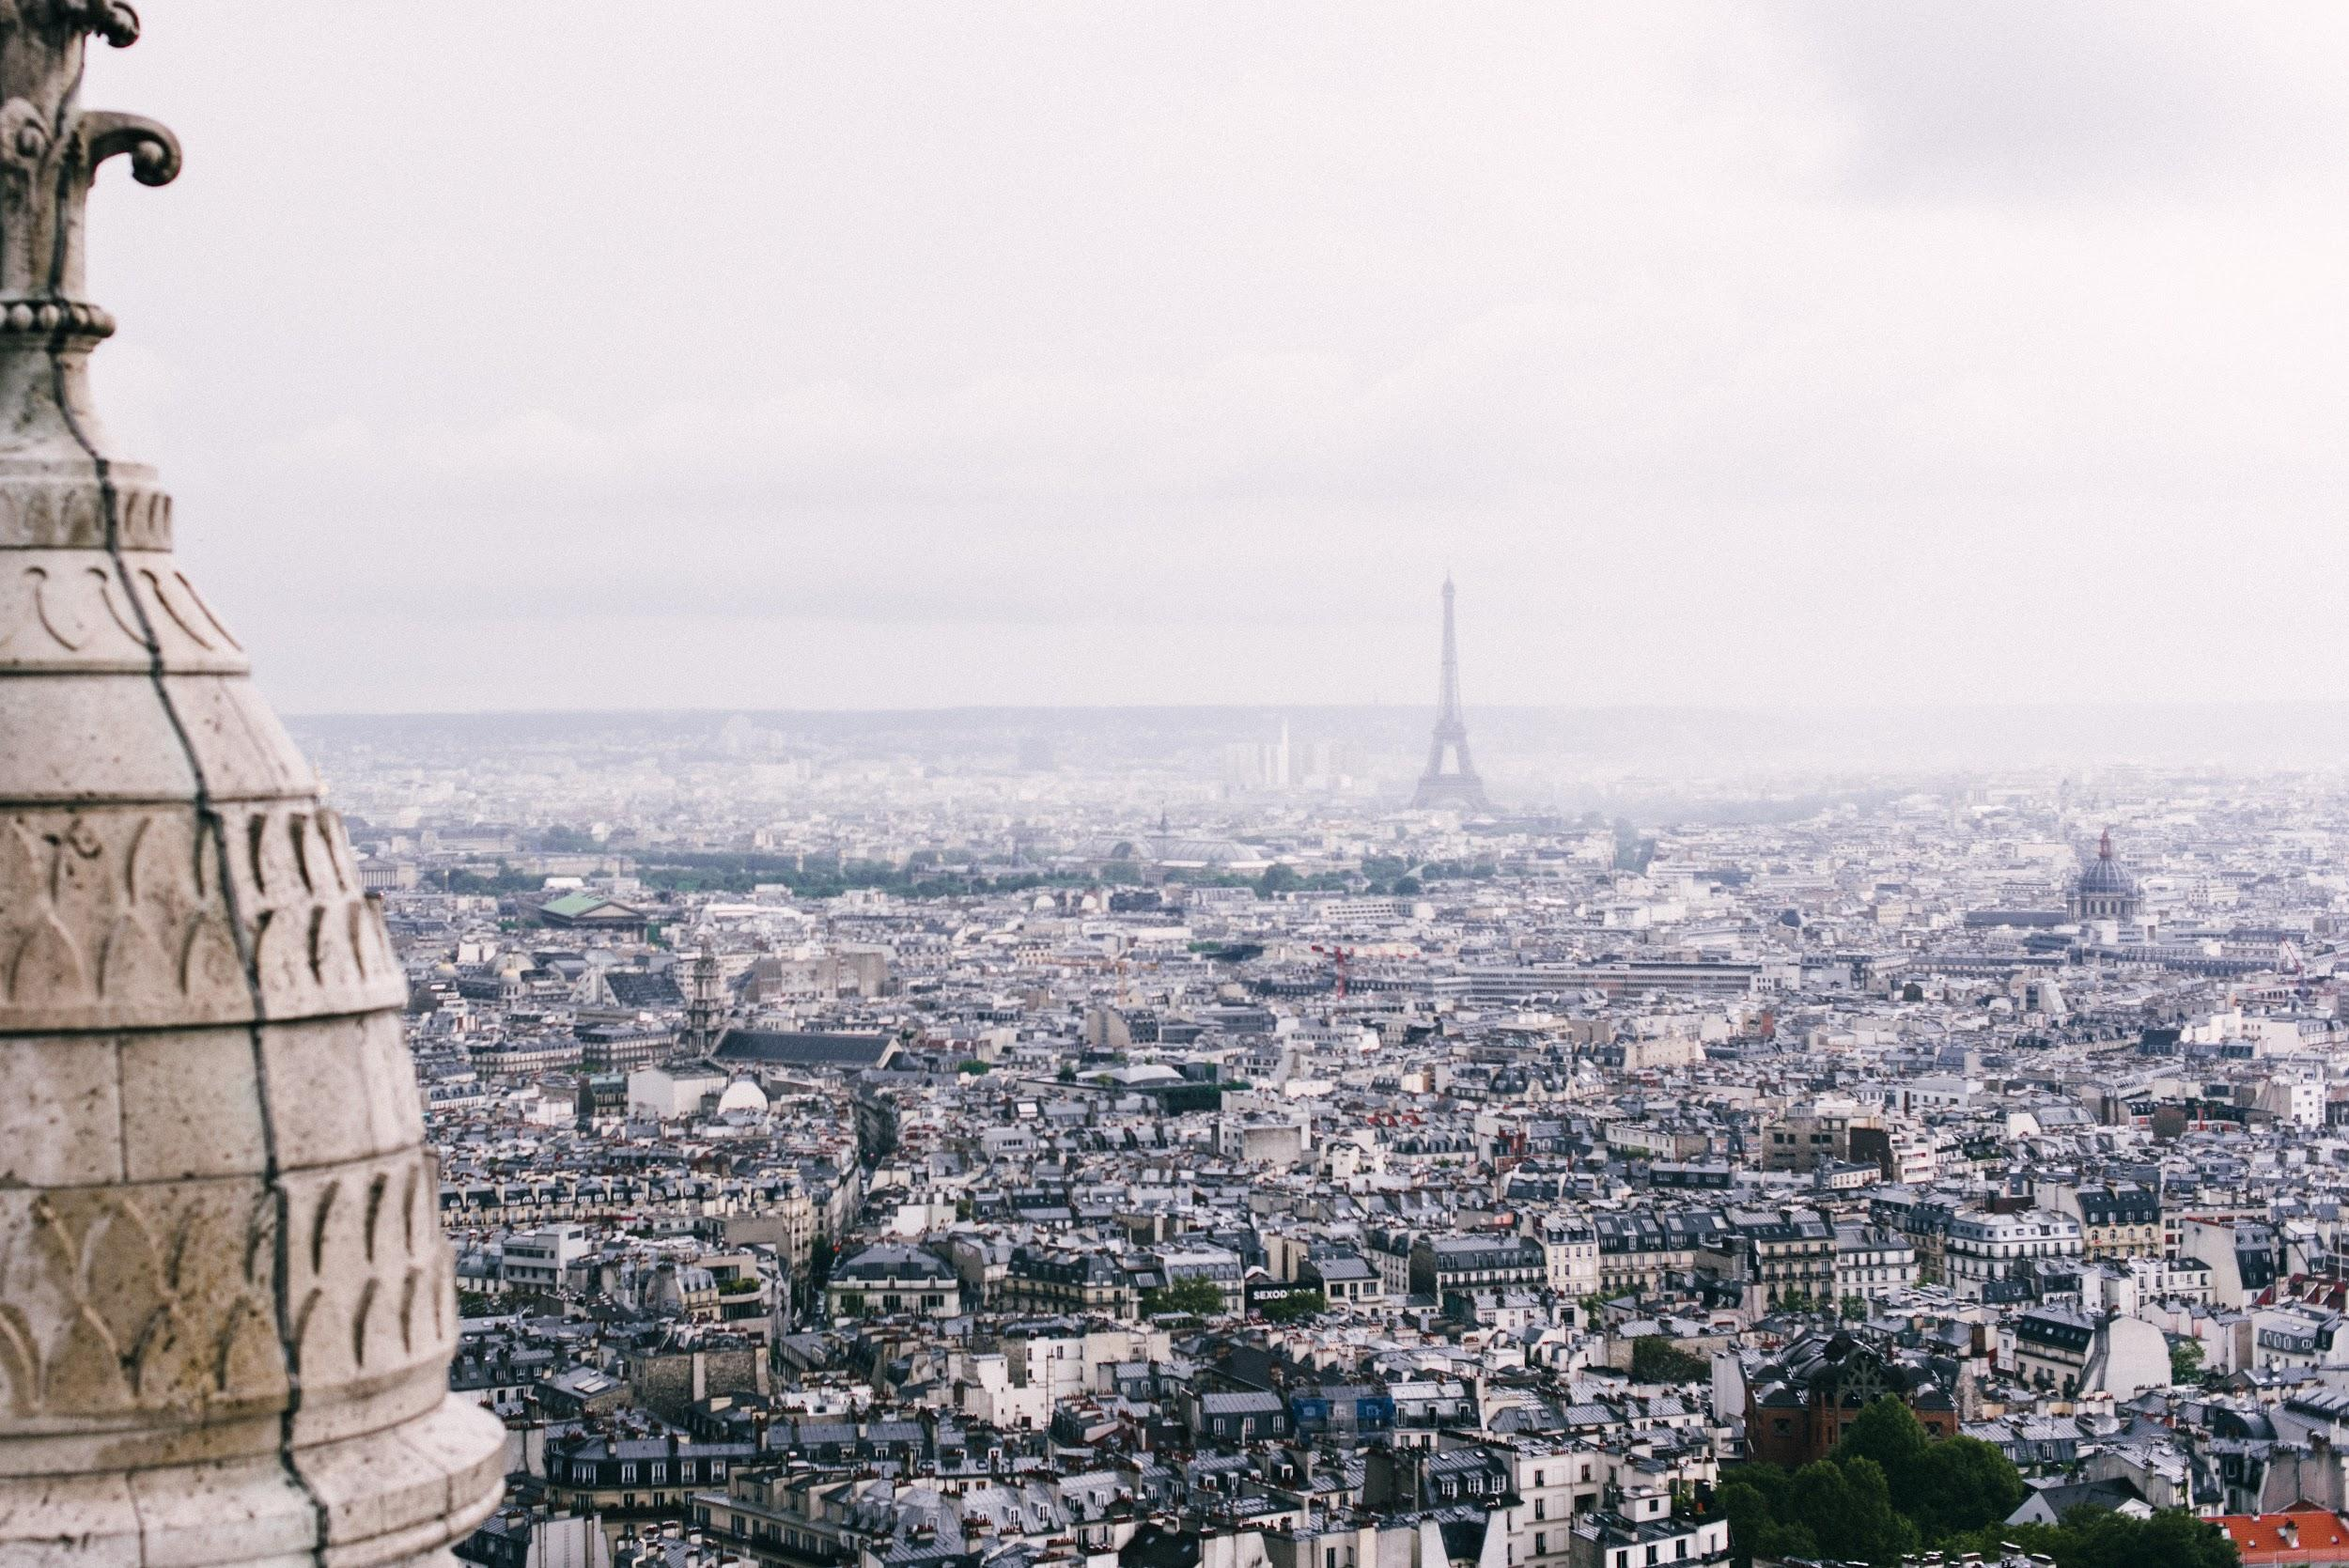 13 Days in Europe: A First-Timer's Itinerary for an Unforgettable Tour